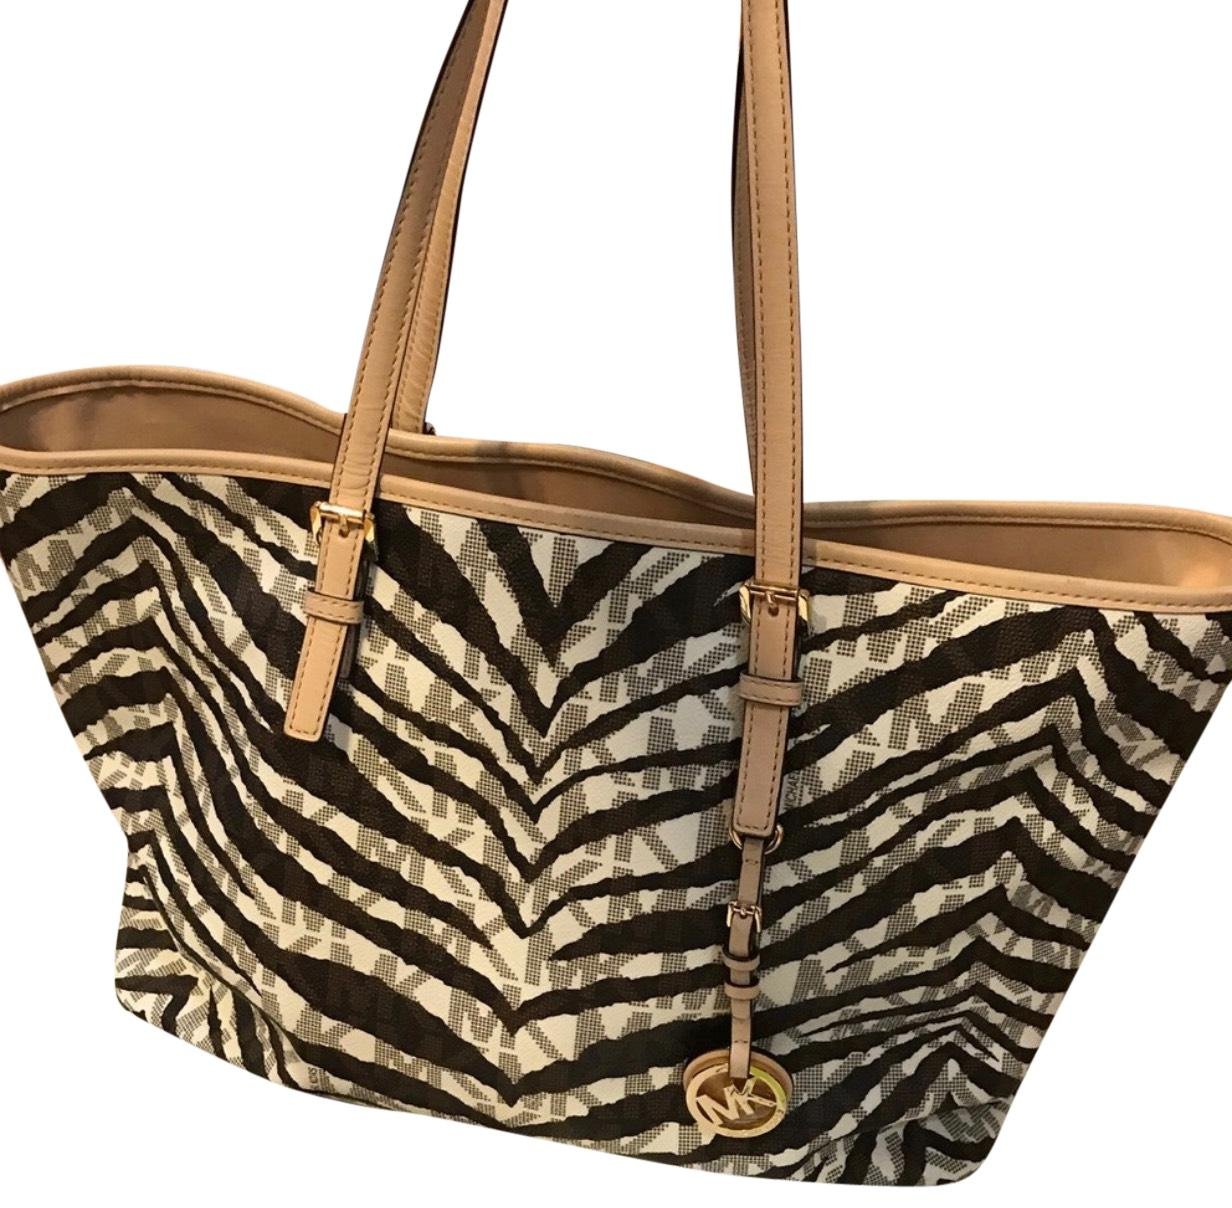 0b715bba4e0f ... animal print black and beige 79eae ee71c; cheap michael kors satchel in  tan brown c36aa 89c08